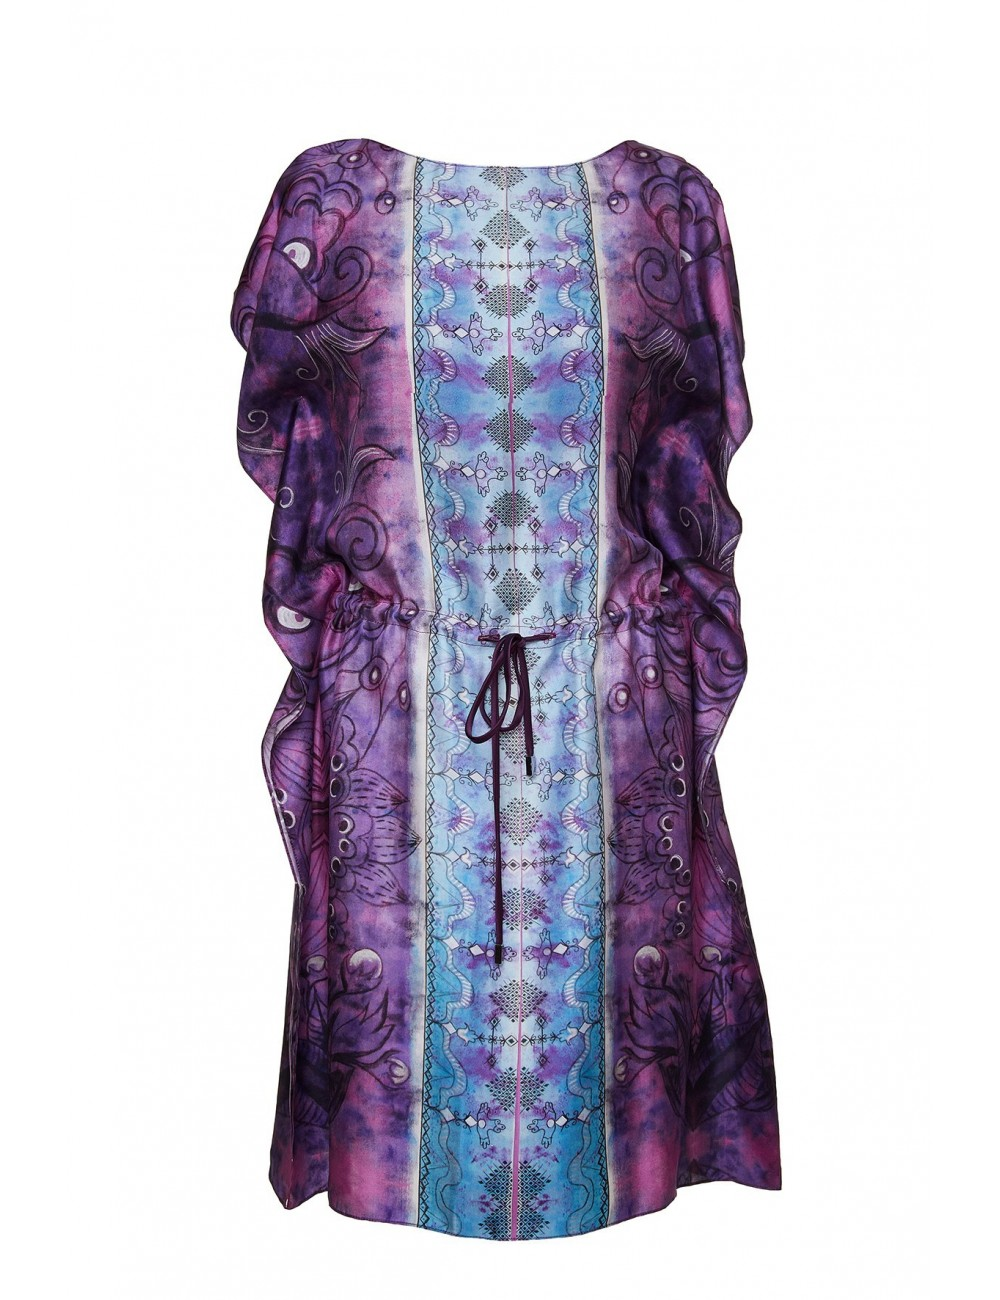 Emotive silk kaftan dress